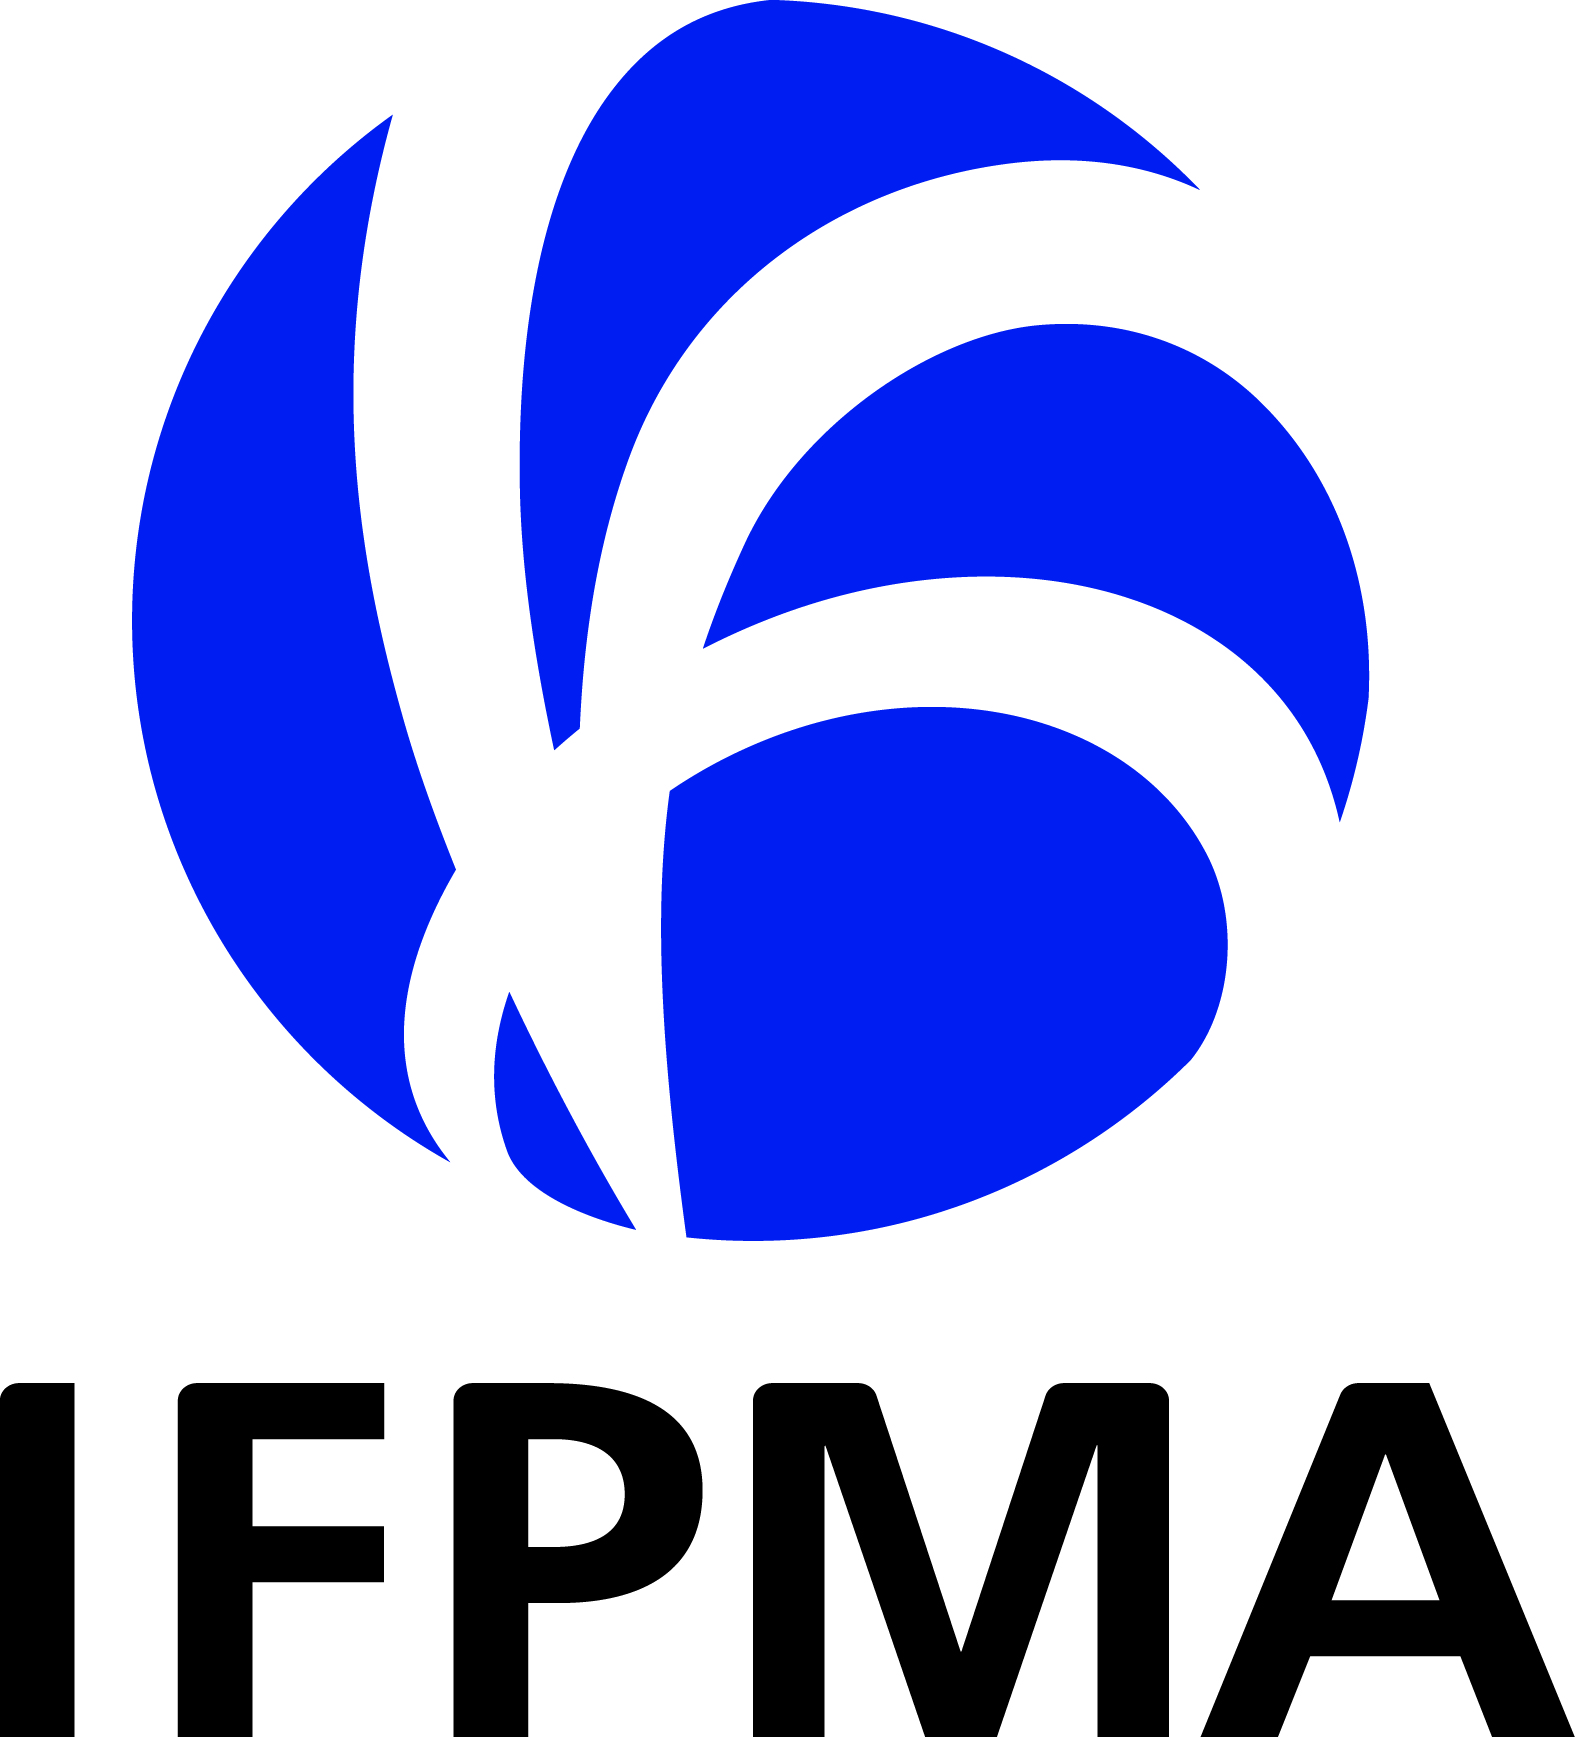 International Federation of Pharmaceutical Manufacturers & Associations logo